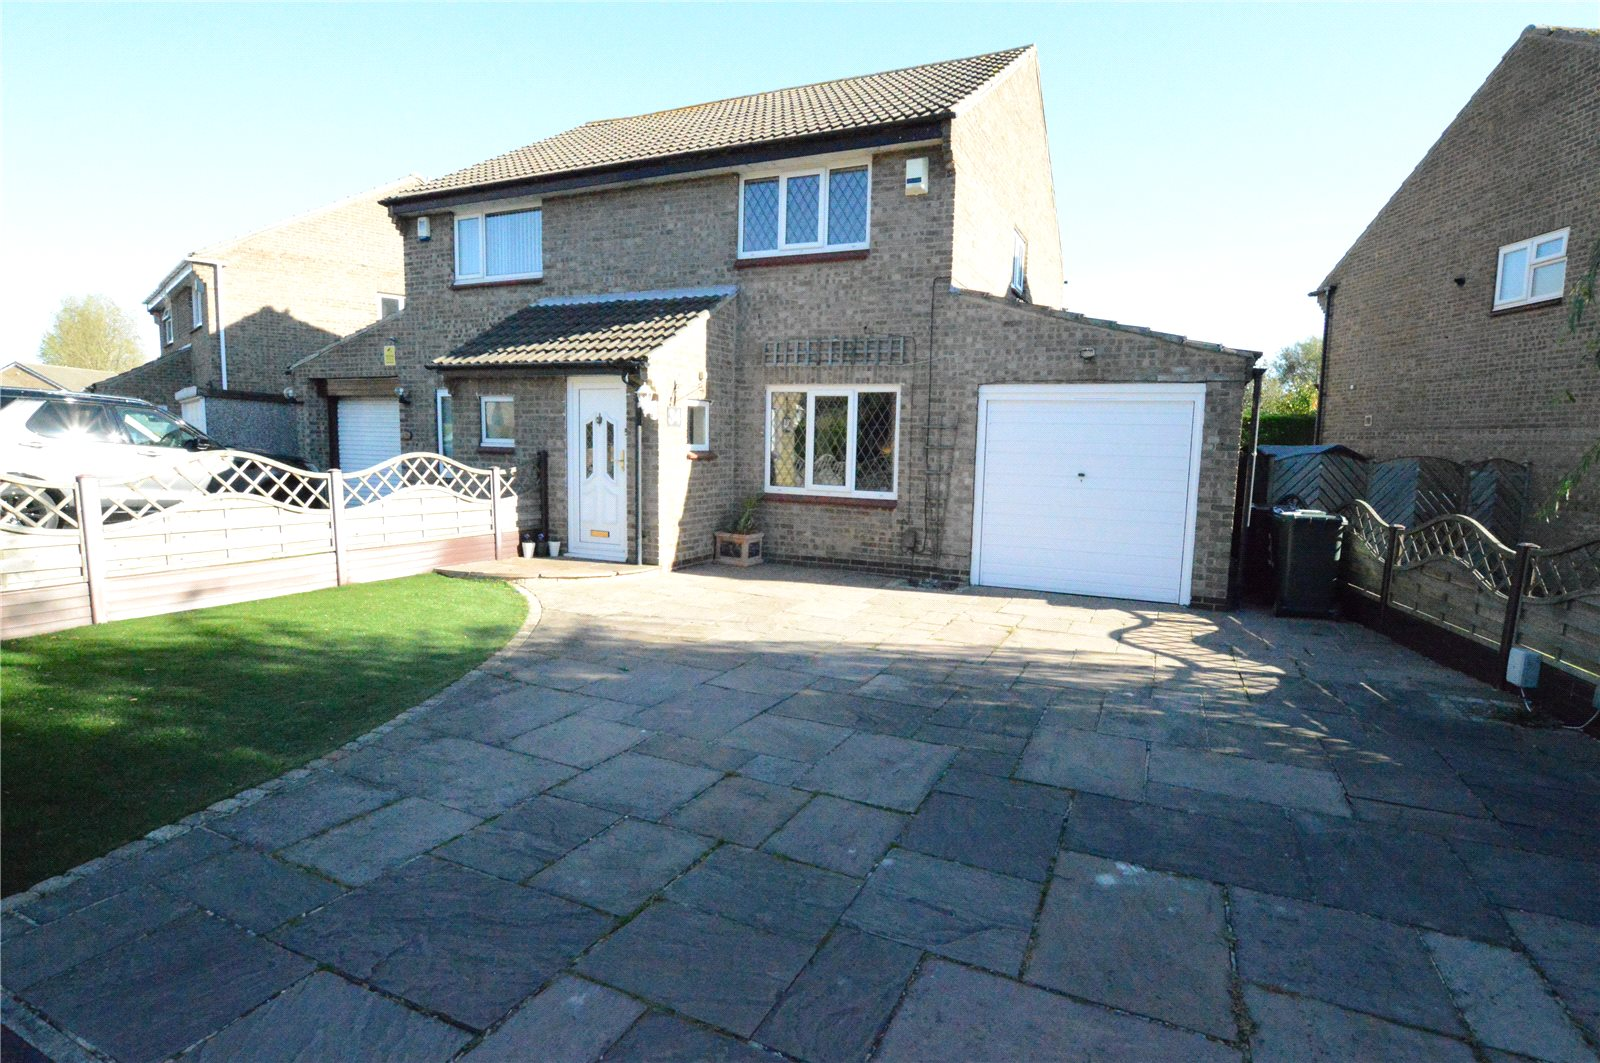 property for sale in crossgates, exterior of home